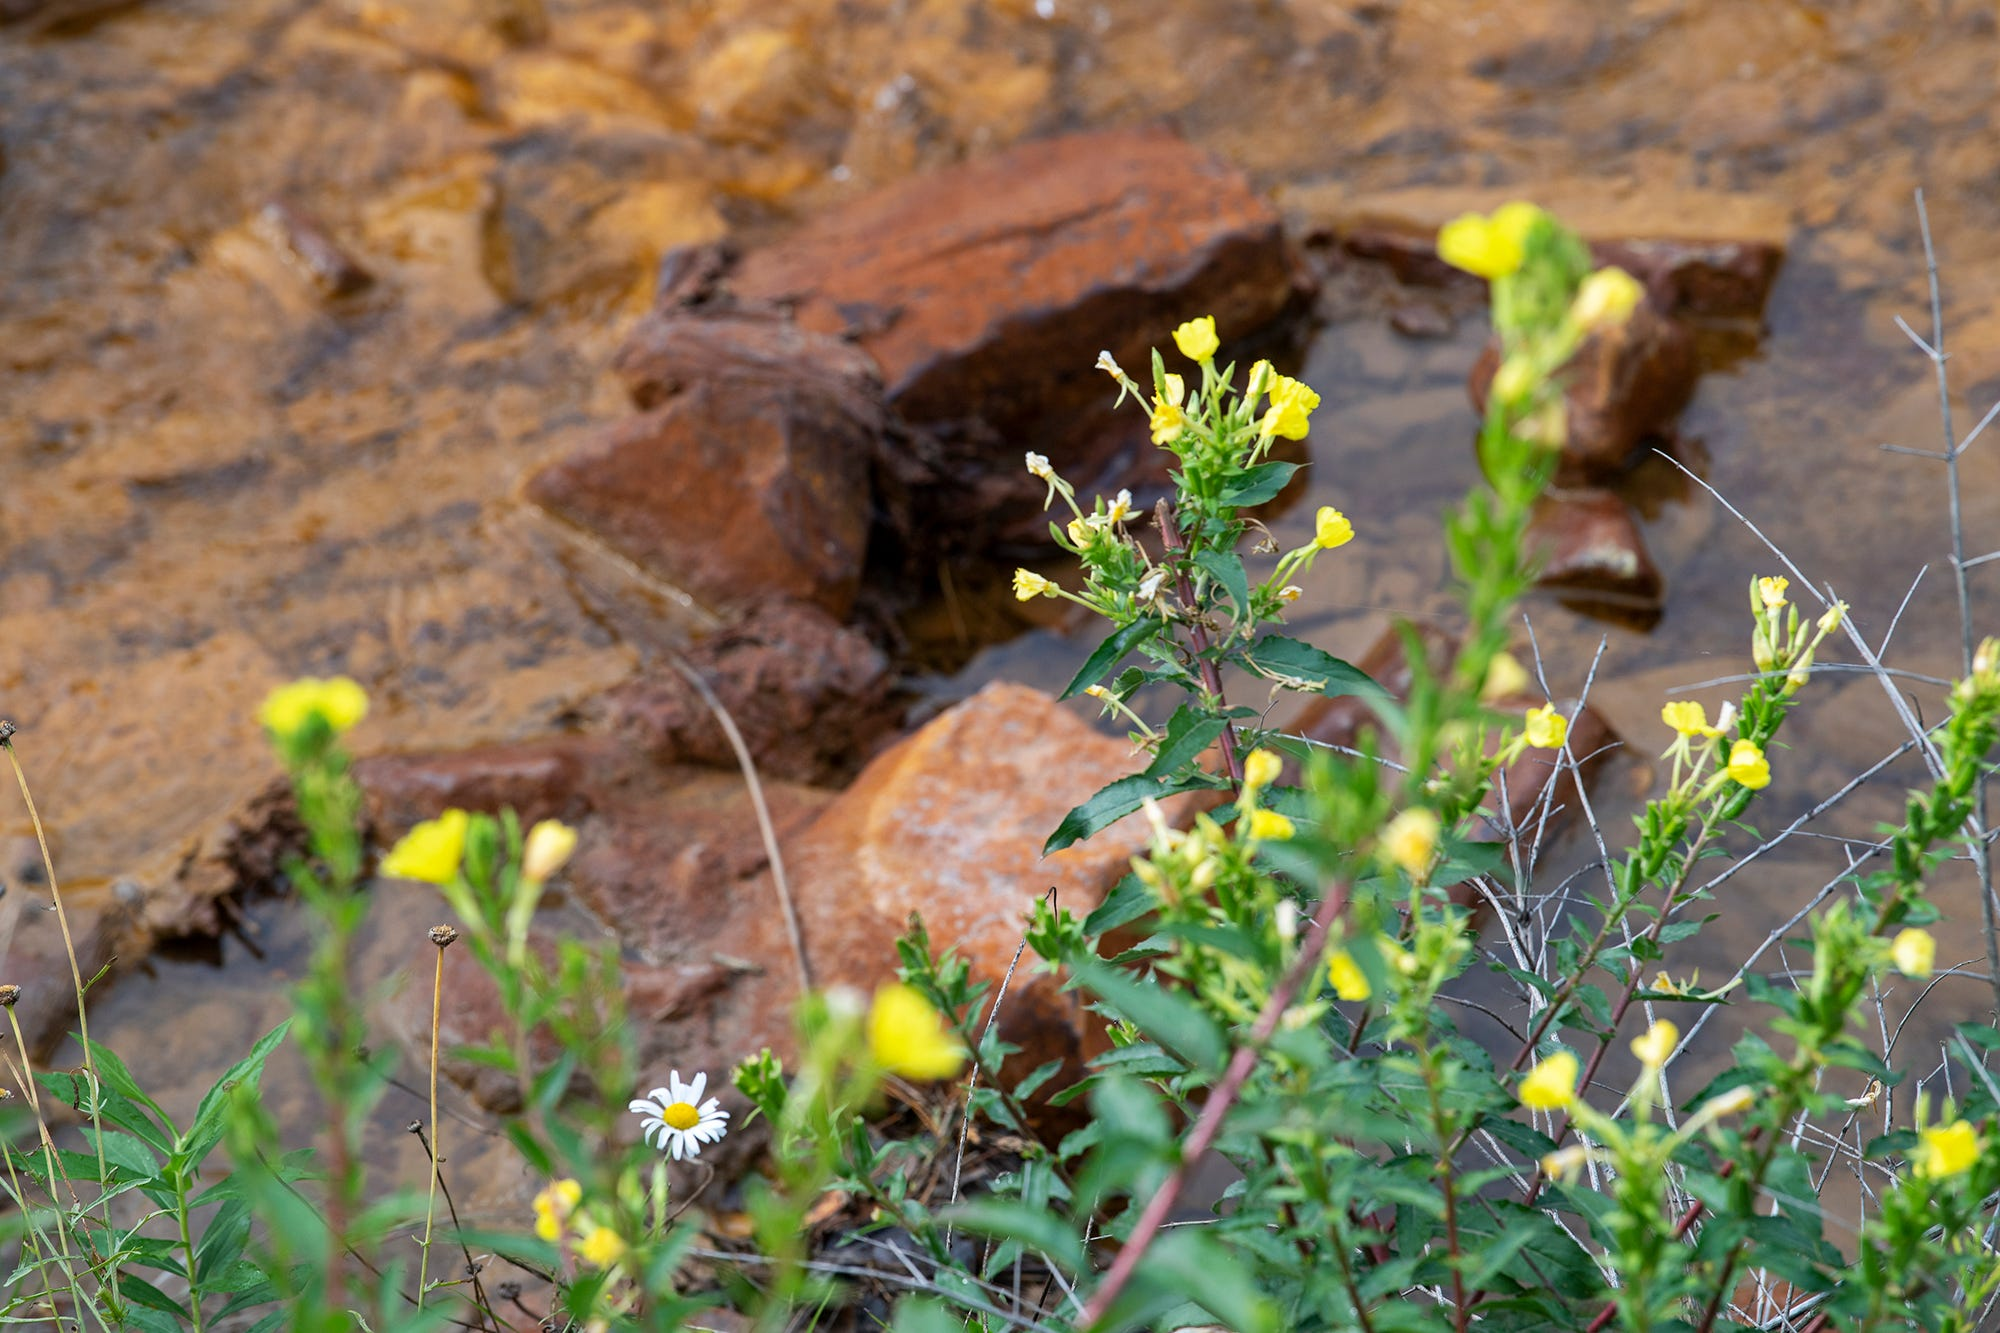 Wild flowers bloom above a mine discharge diversion trench with its reddish water.